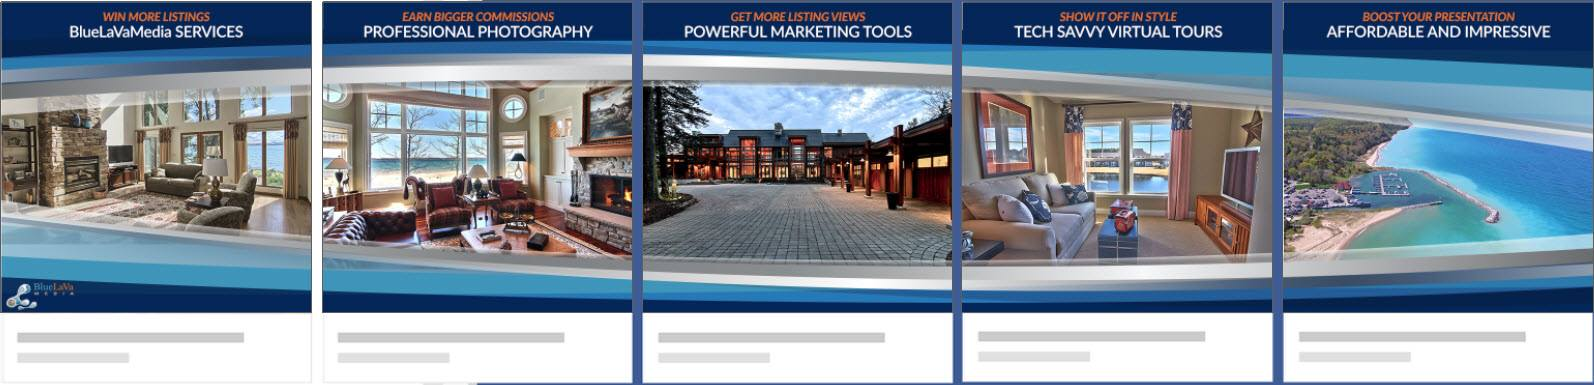 virtual tour provider facebook ad